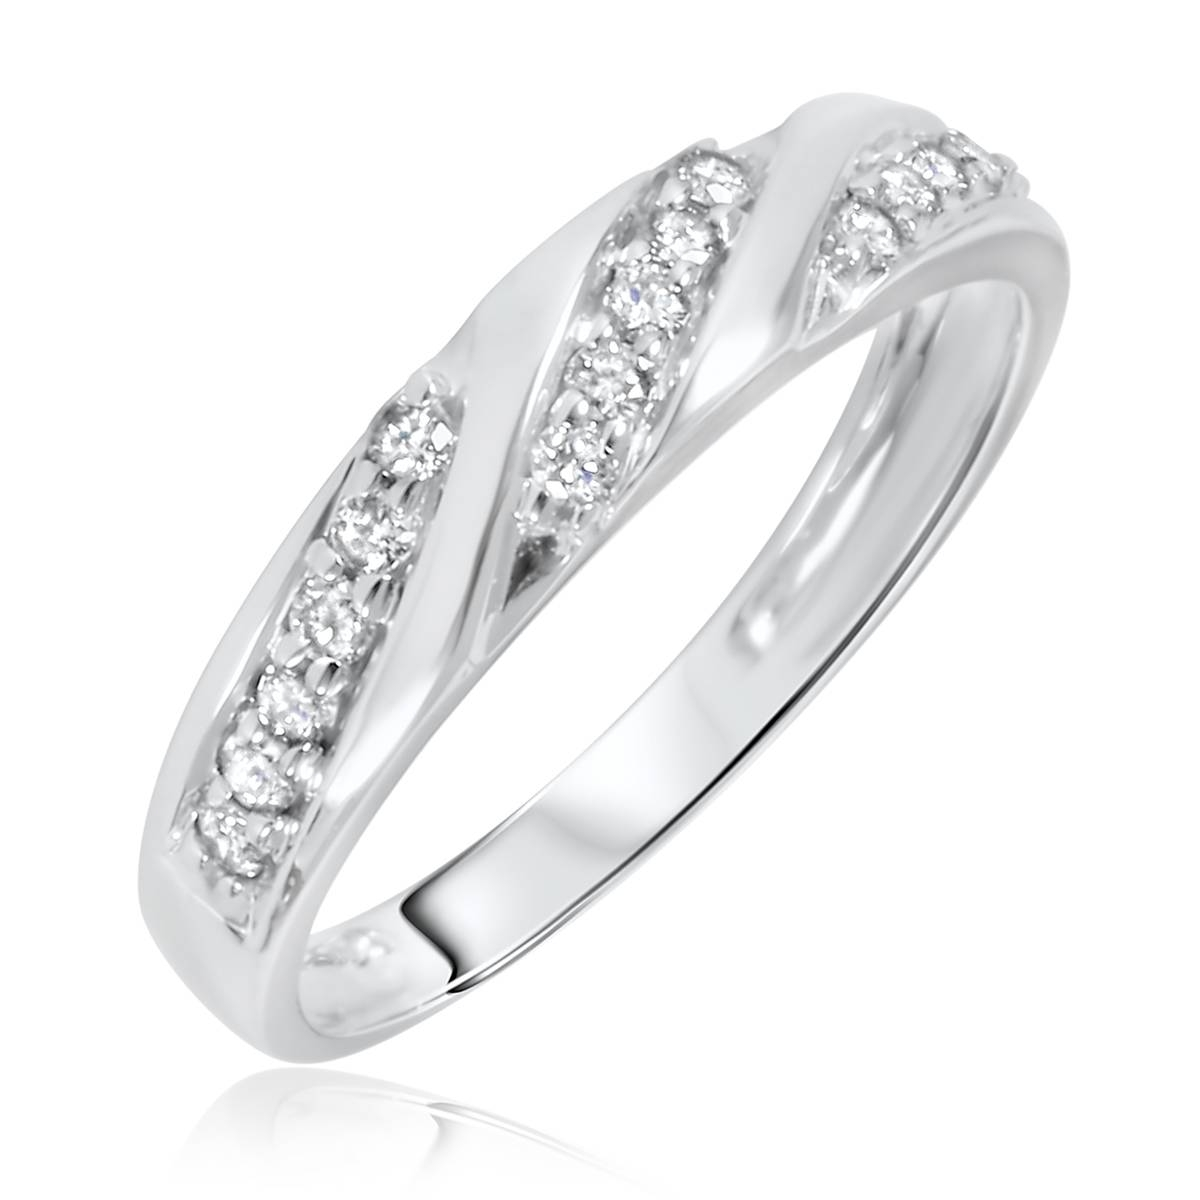 1 Carat Diamond Trio Wedding Ring Set 10K White Gold Regarding White Gold Wedding Rings For Women (View 1 of 15)